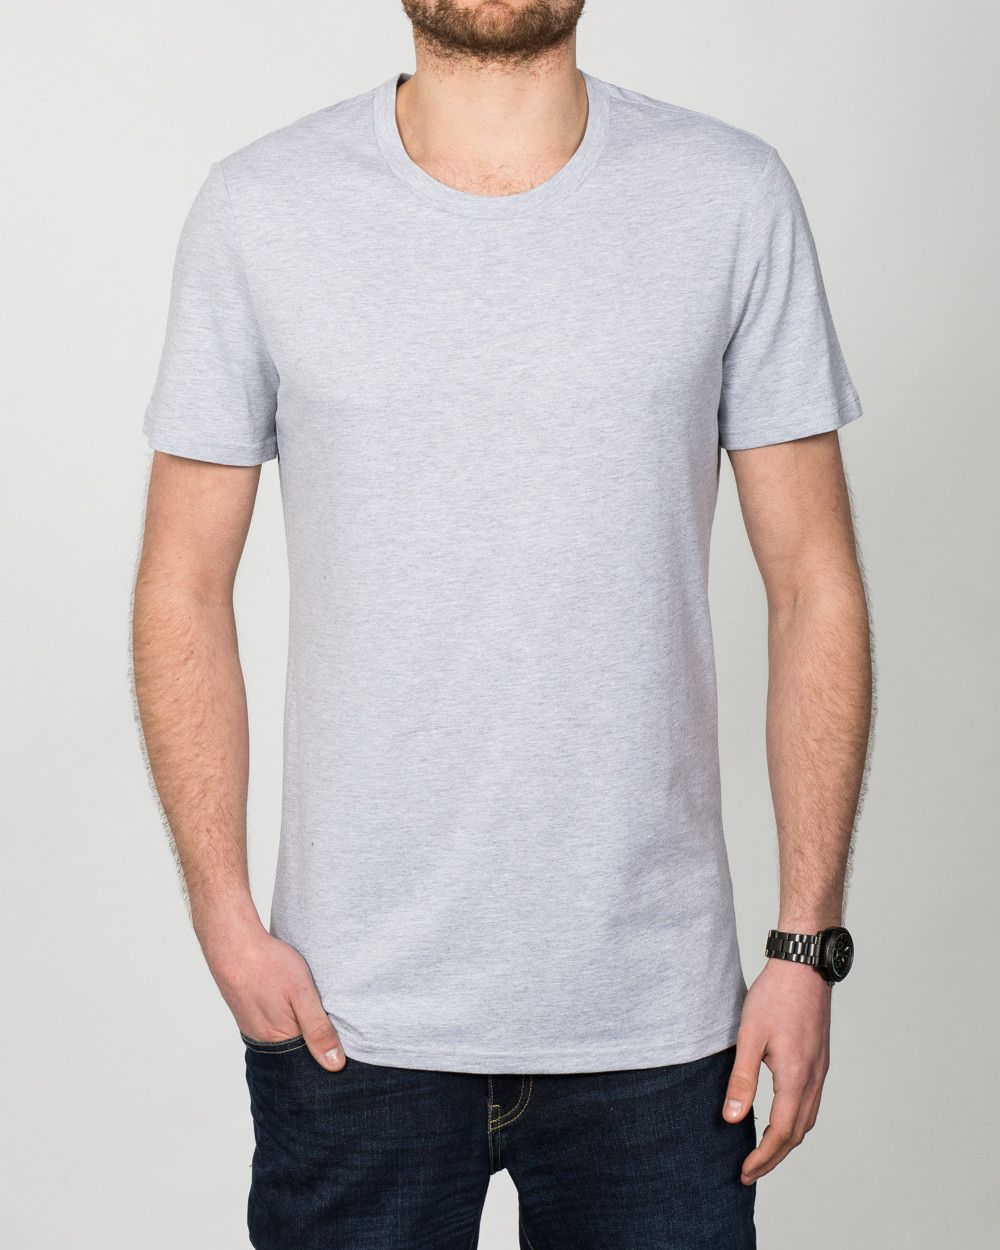 b598261ff753 2t Tall T-Shirt (heather grey) | Extra Long Tall Mens Clothing | Suits |  Tall Mens Jeans | Shirts | Size 13-18 Shoes #tallmen #fashion